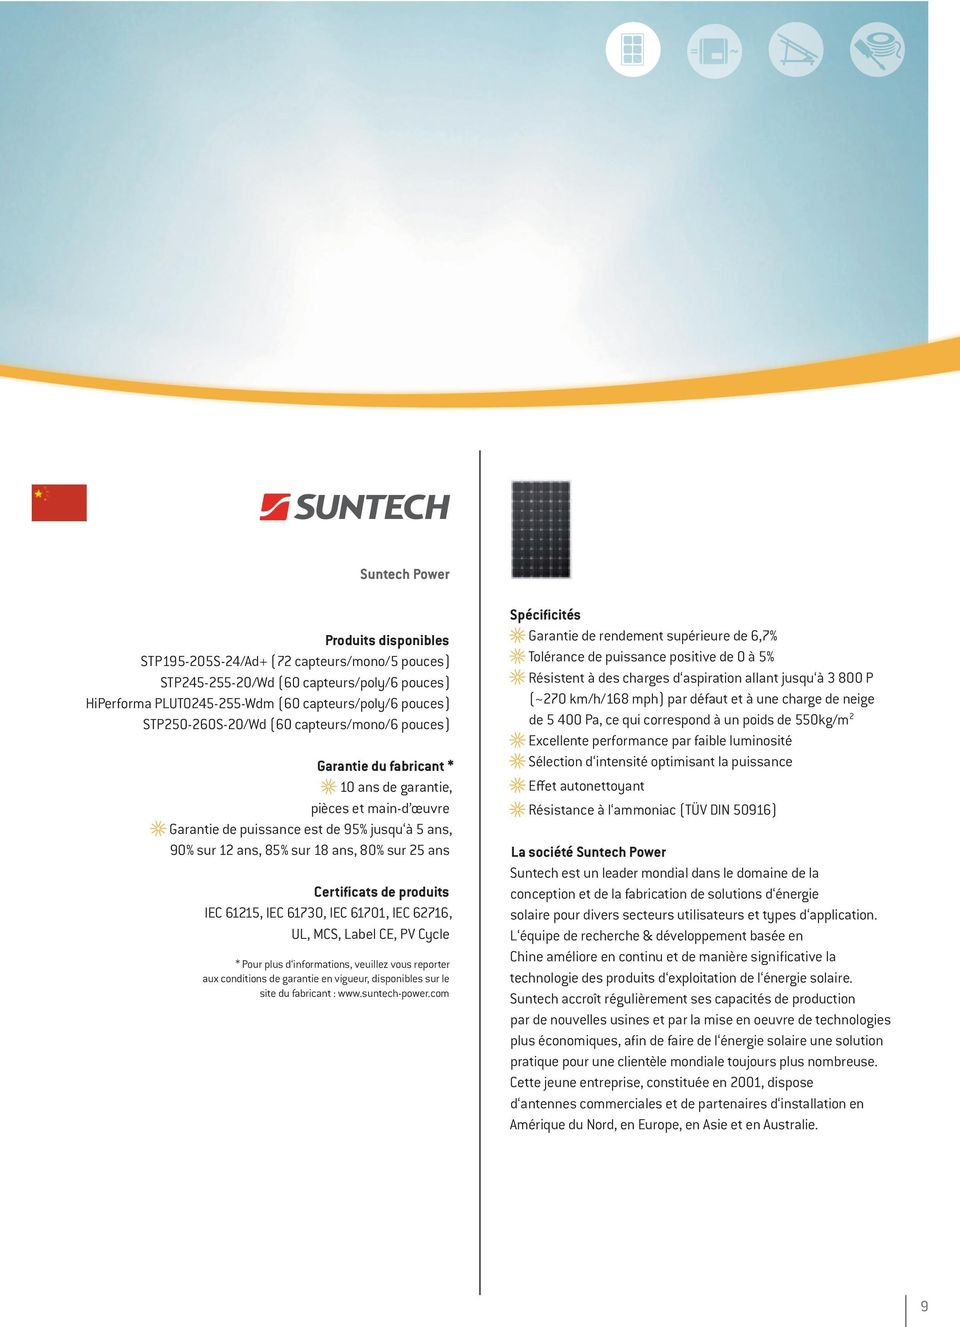 61701, IEC 62716, UL, MCS, Label CE, PV Cycle site du fabricant : www.suntech-power.